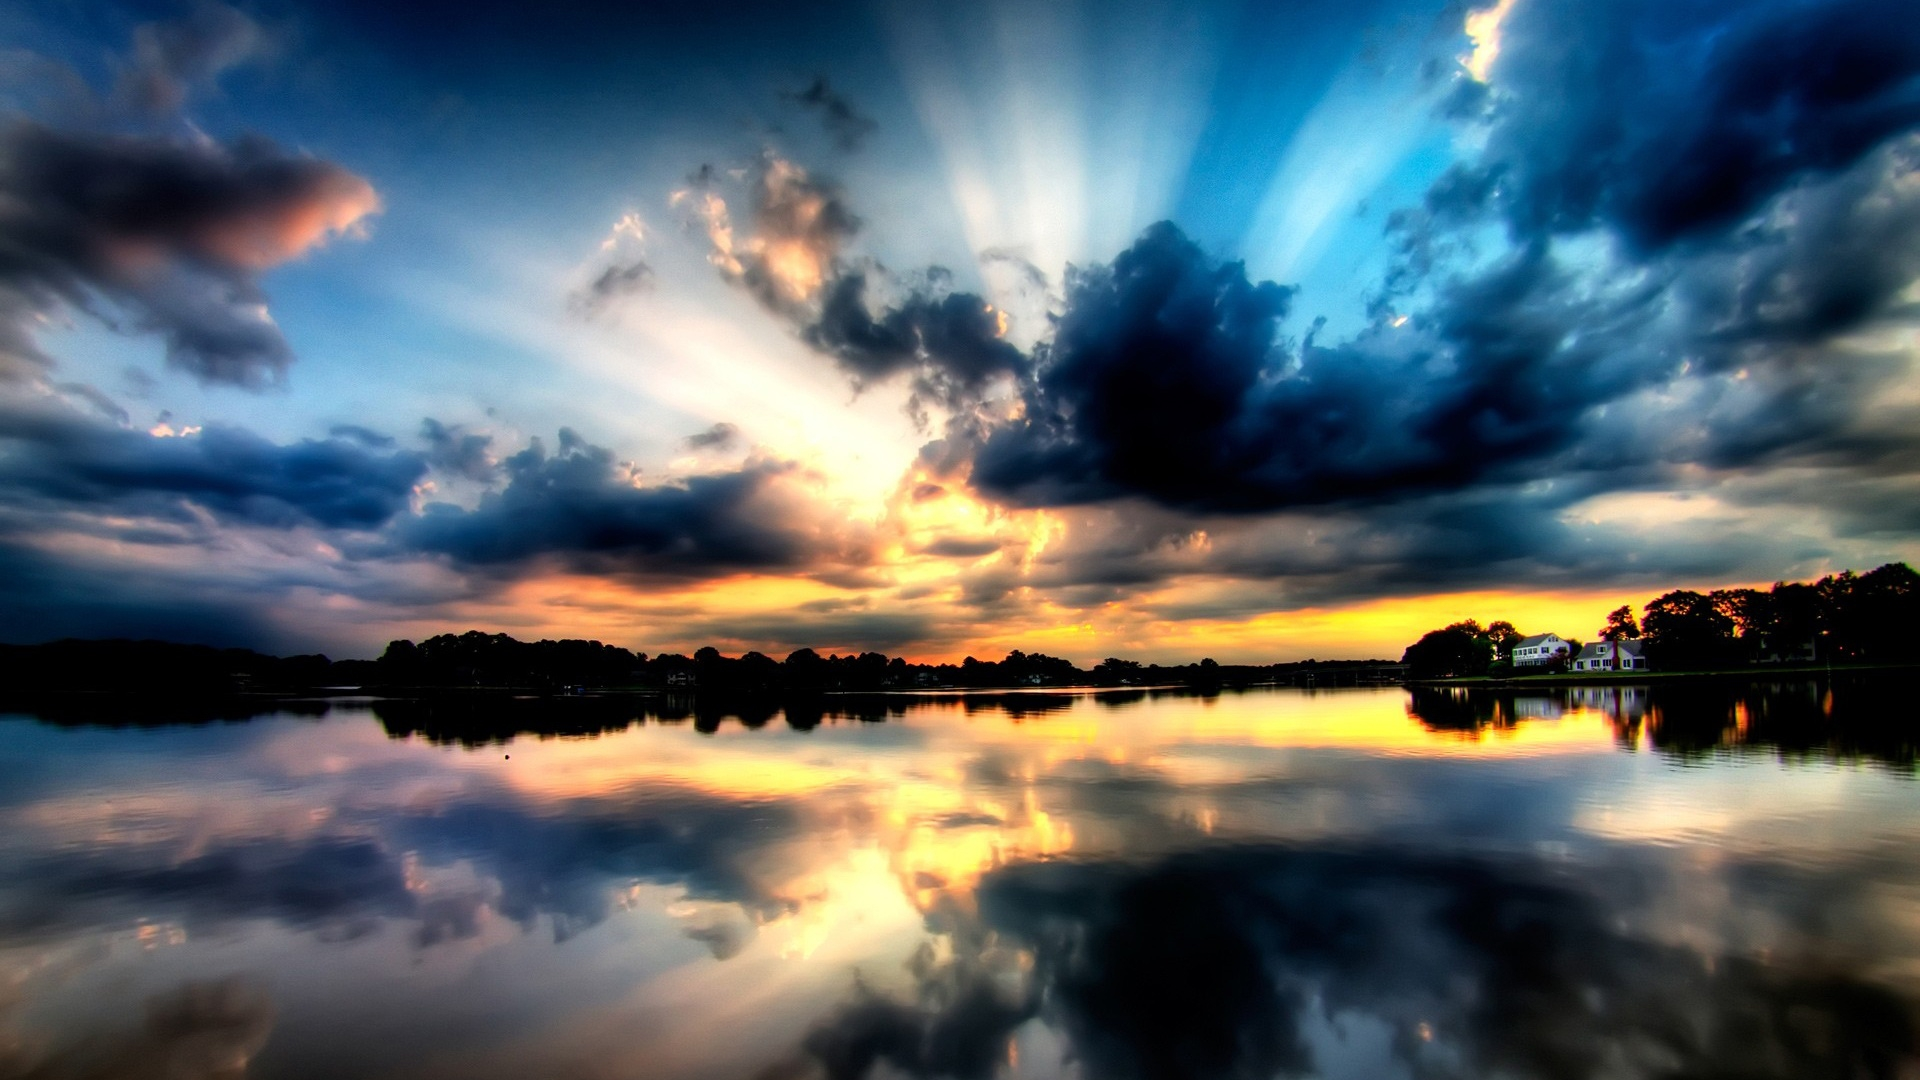 Amazing Dunyo Most Popular Wallpapers: [49+] Most Awesome Wallpaper Ever On WallpaperSafari